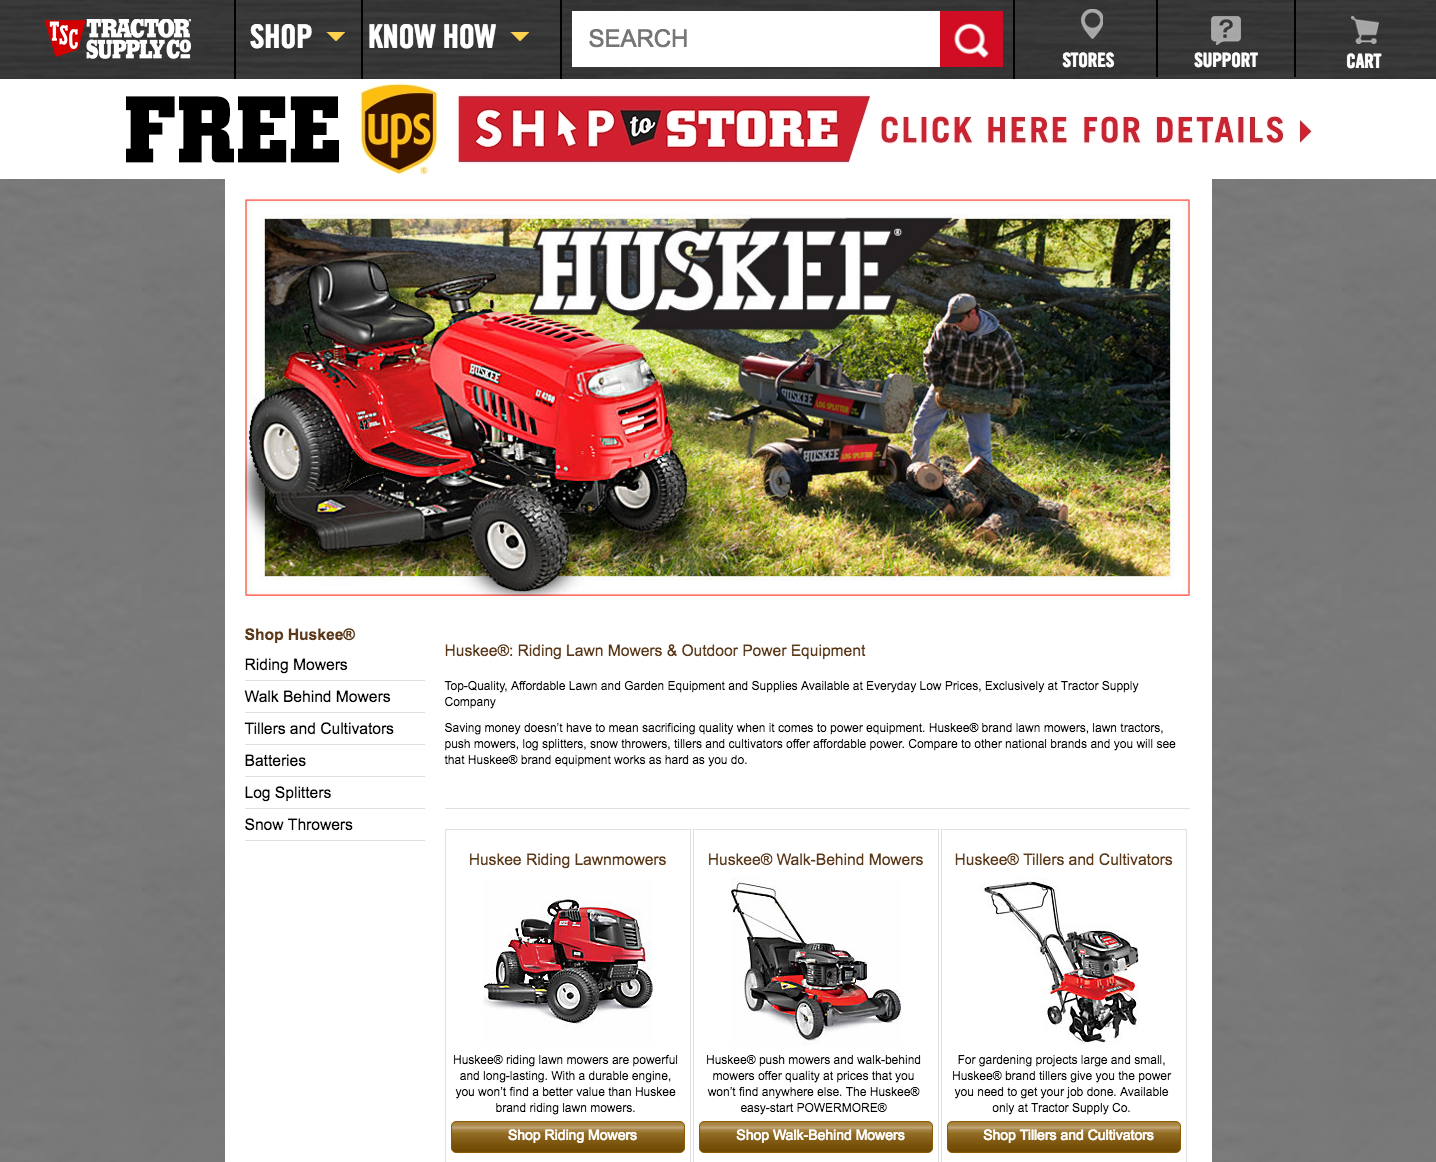 Top 92 Complaints and Reviews about Huskee